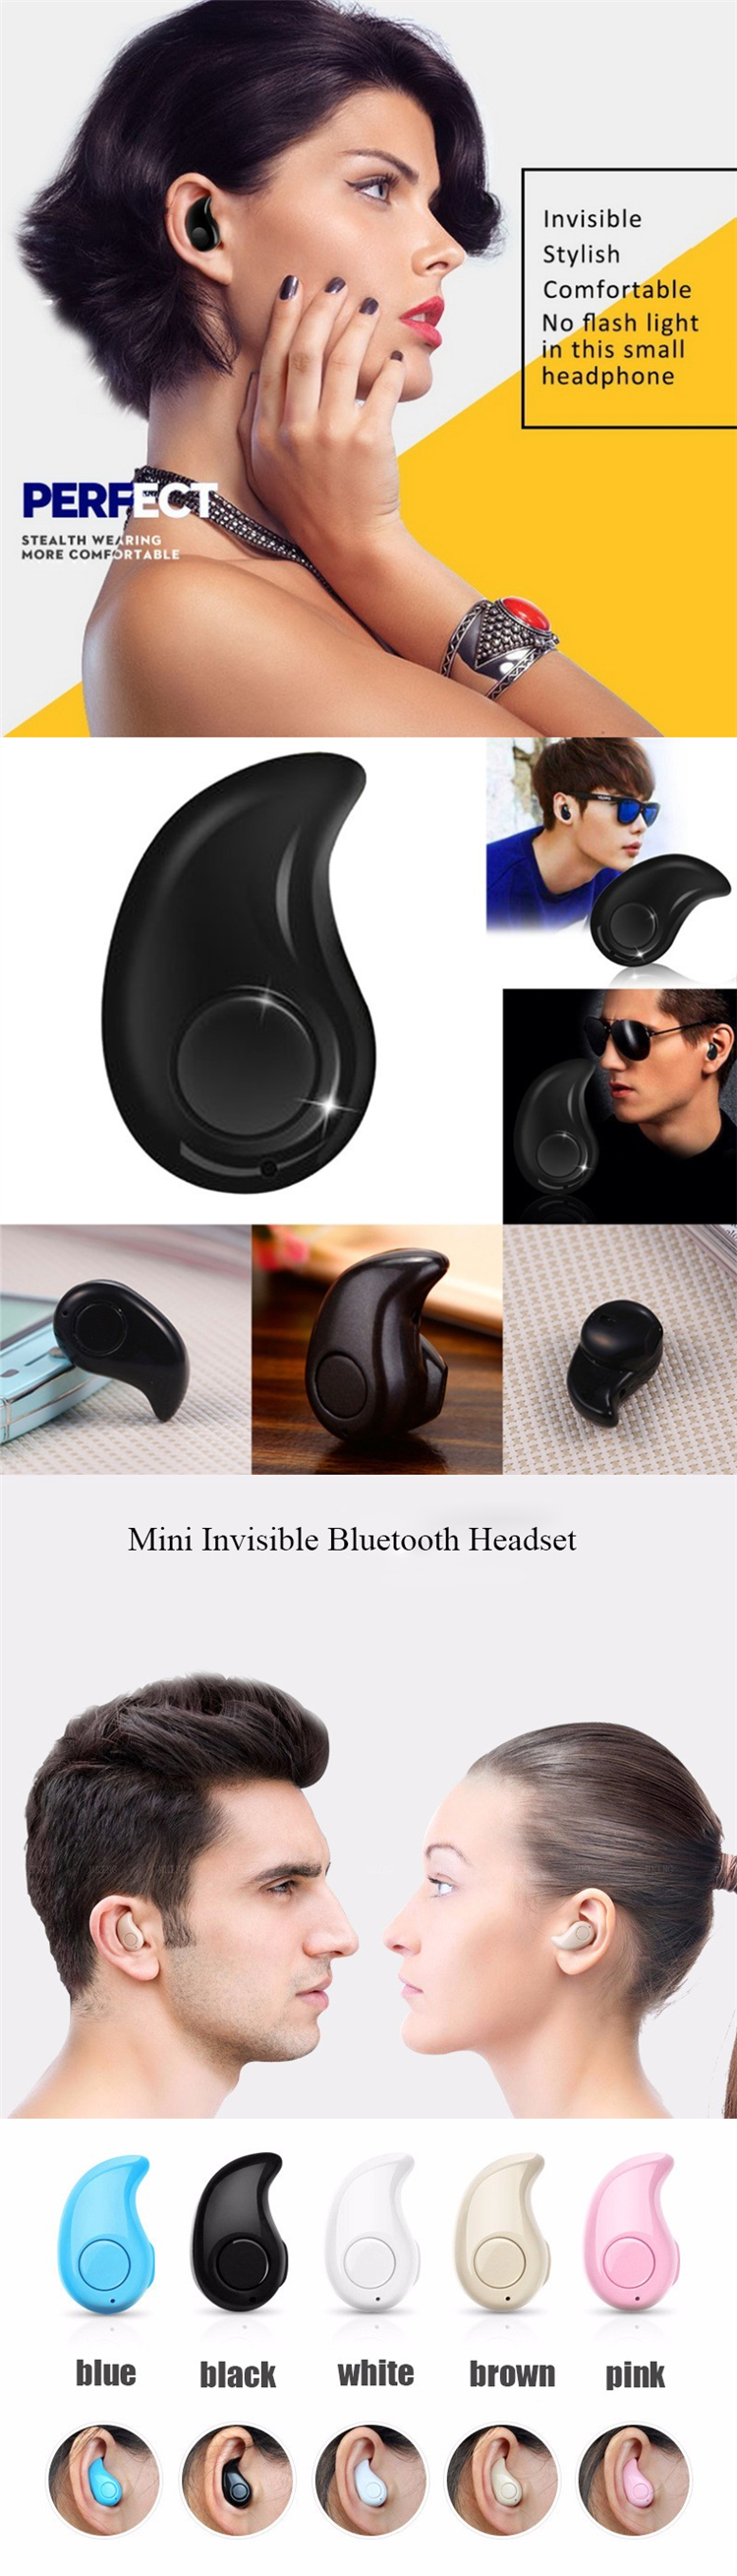 d63e68f5164 China Best cute bluetooth headphone for girls invisible bluetooth earphone  With Bottom Price